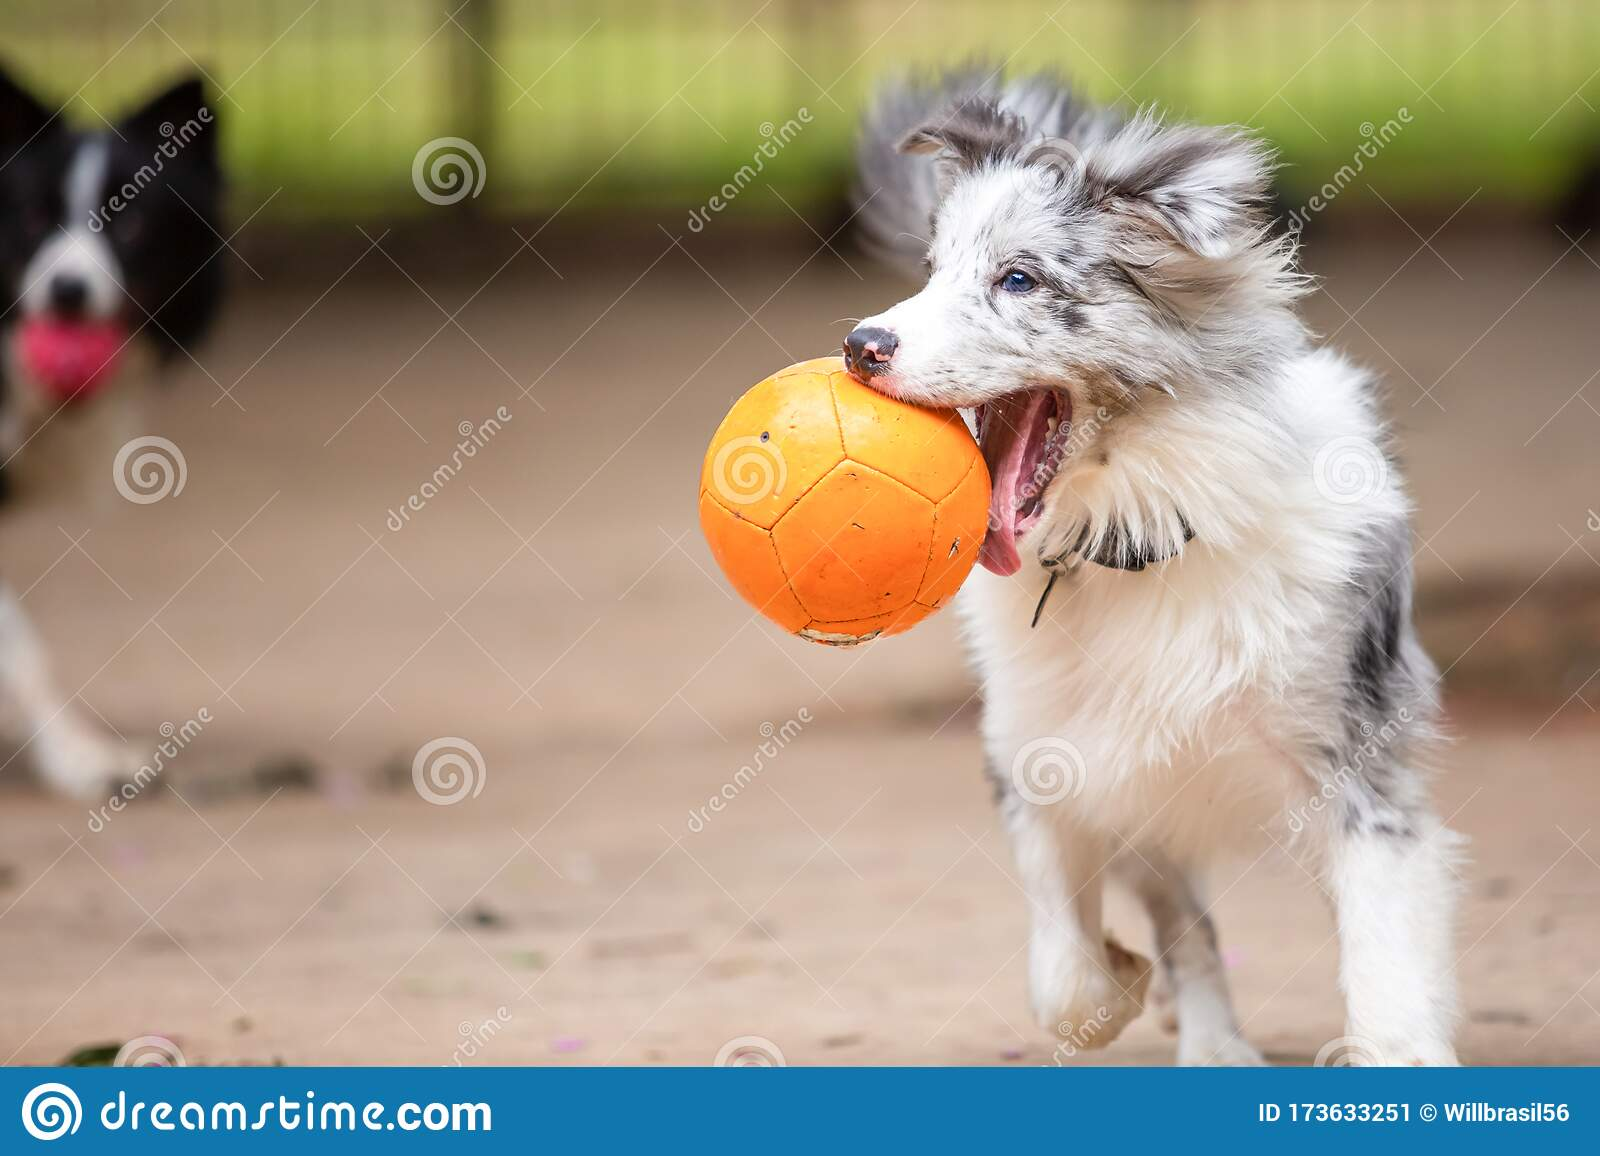 Blue Merle Border Collie Puppy Playing With A Ball In Its Mouth Stock Image Image Of Healthy Friend 173633251